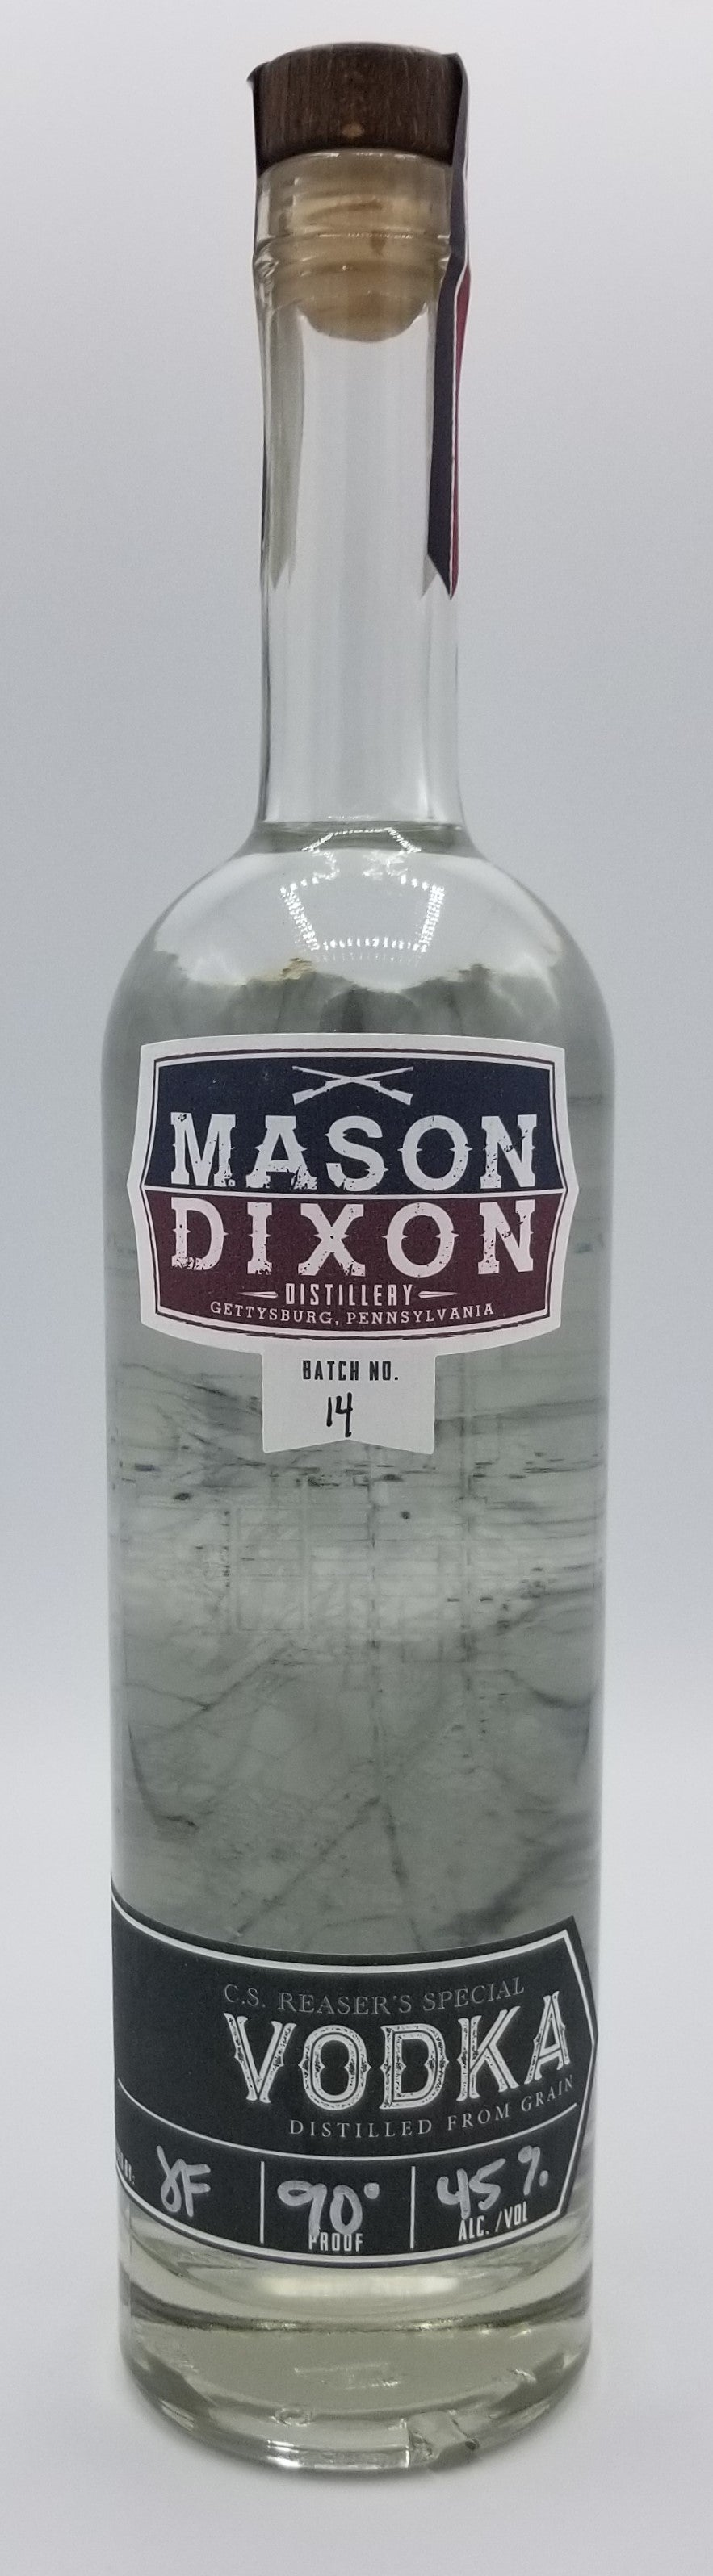 MDD Vodka - Mason Dixon Distillery